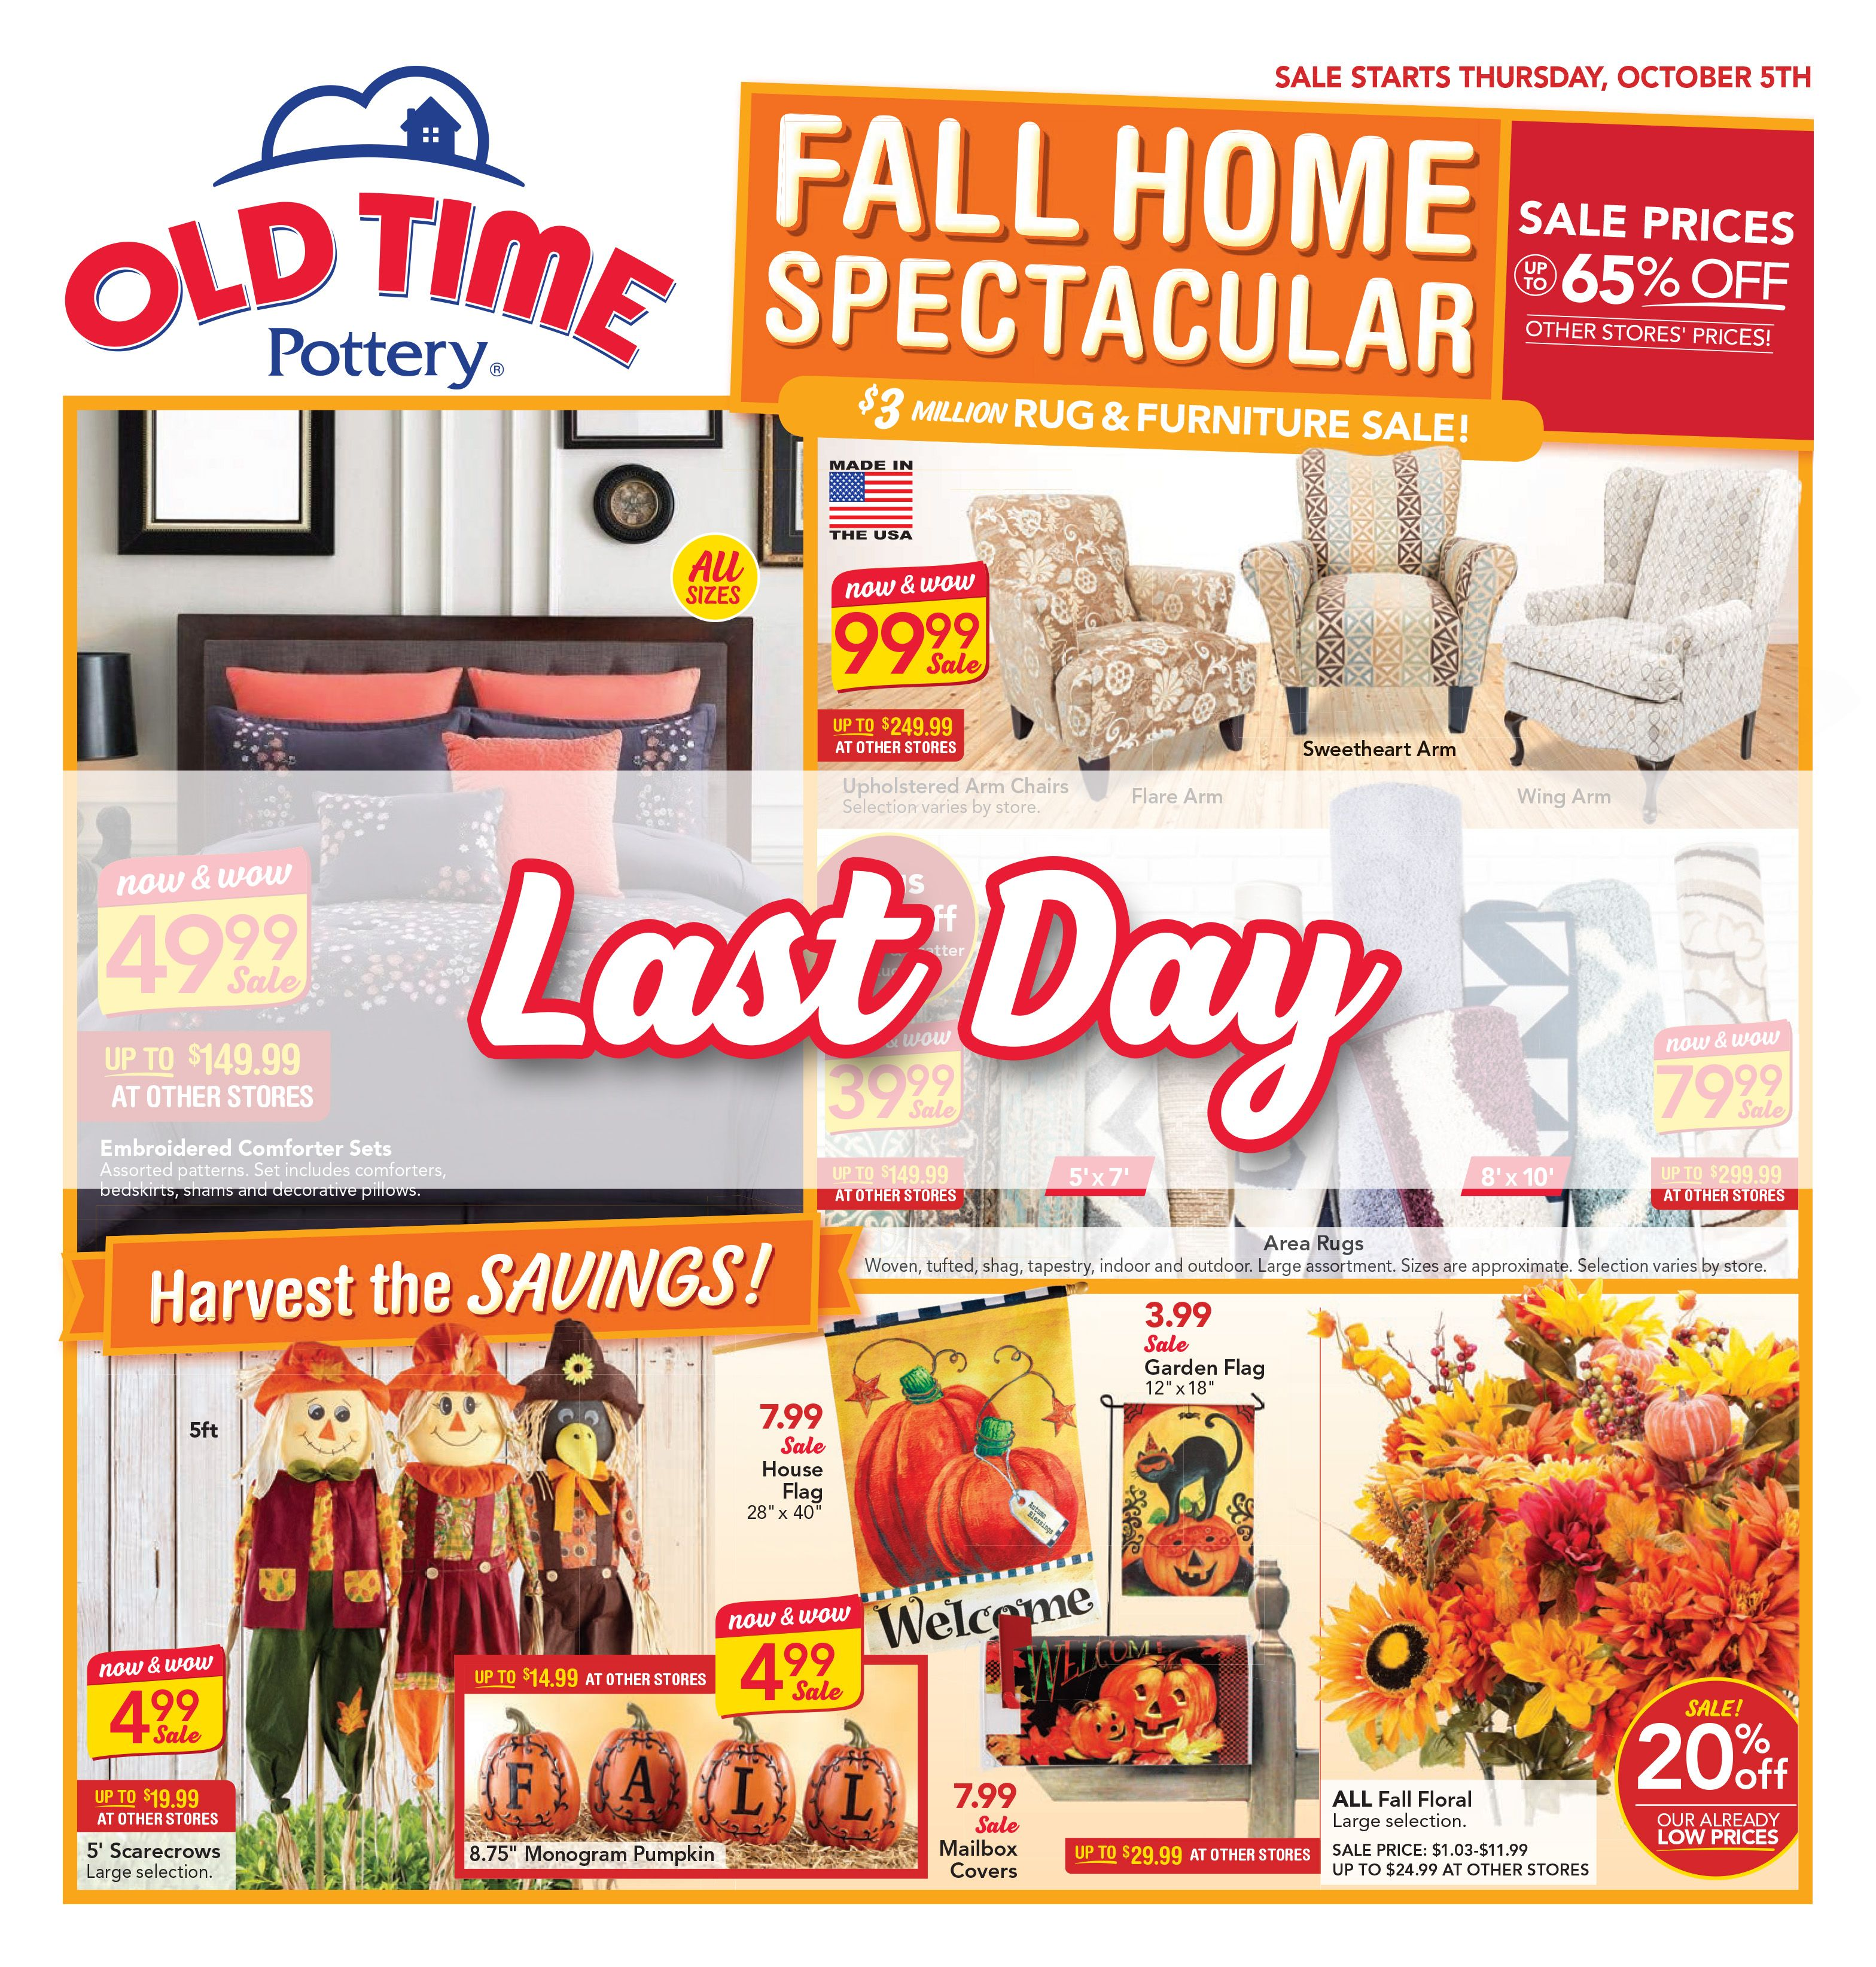 Today is the last day of the fall home spectacular sale visit us to take advantage of these last minute steals